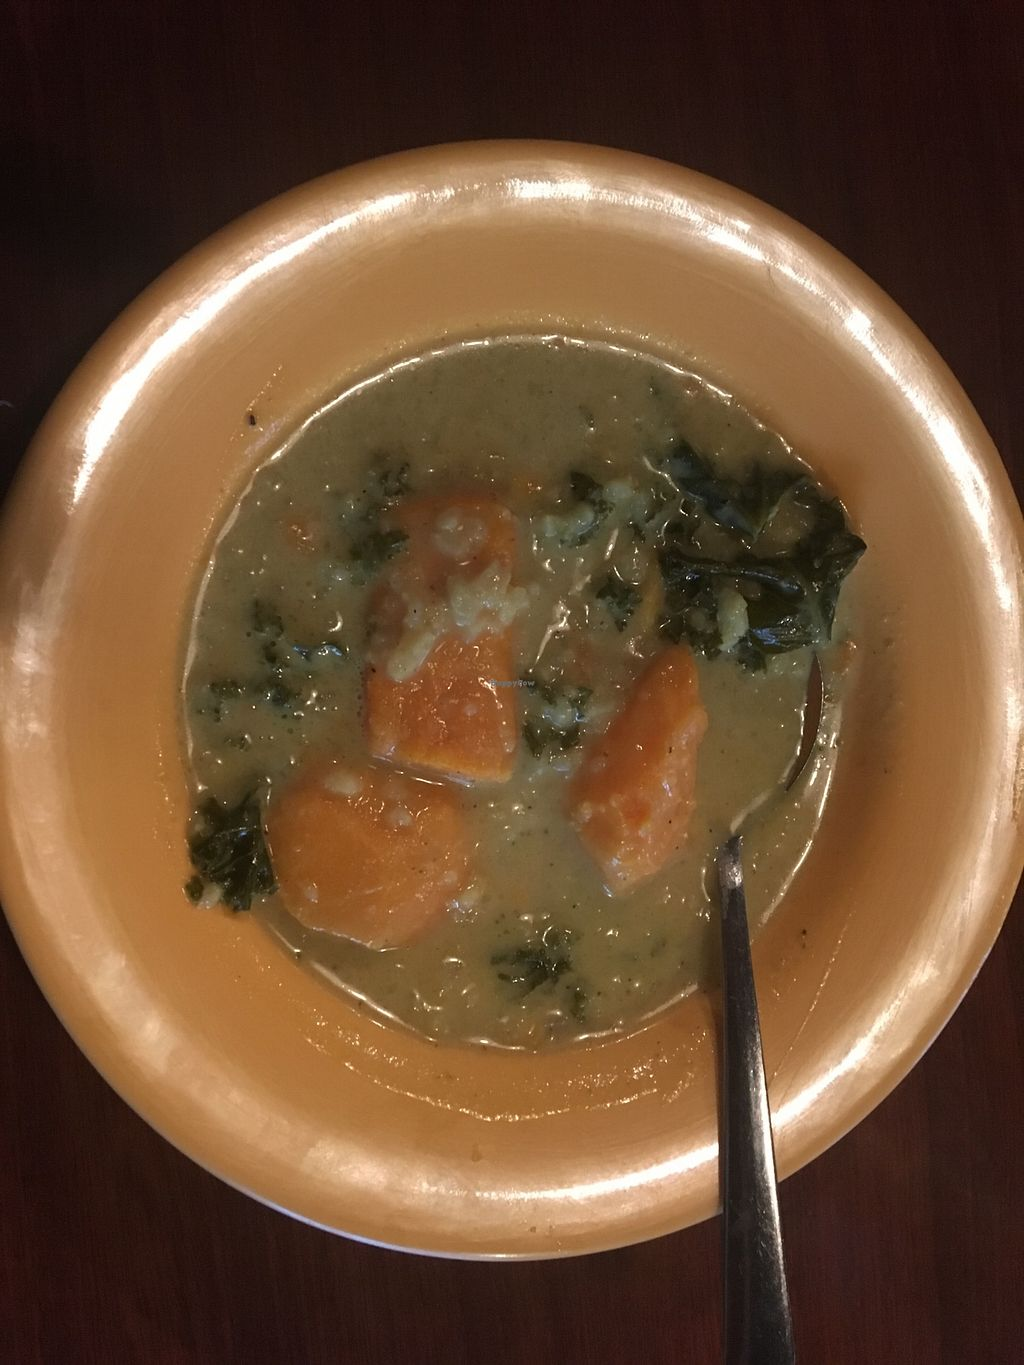 """Photo of Garlik Vegan  by <a href=""""/members/profile/Michael%20Isavegan"""">Michael Isavegan</a> <br/>Curry Sweet Potato and Kale soup <br/> April 13, 2018  - <a href='/contact/abuse/image/112581/384794'>Report</a>"""